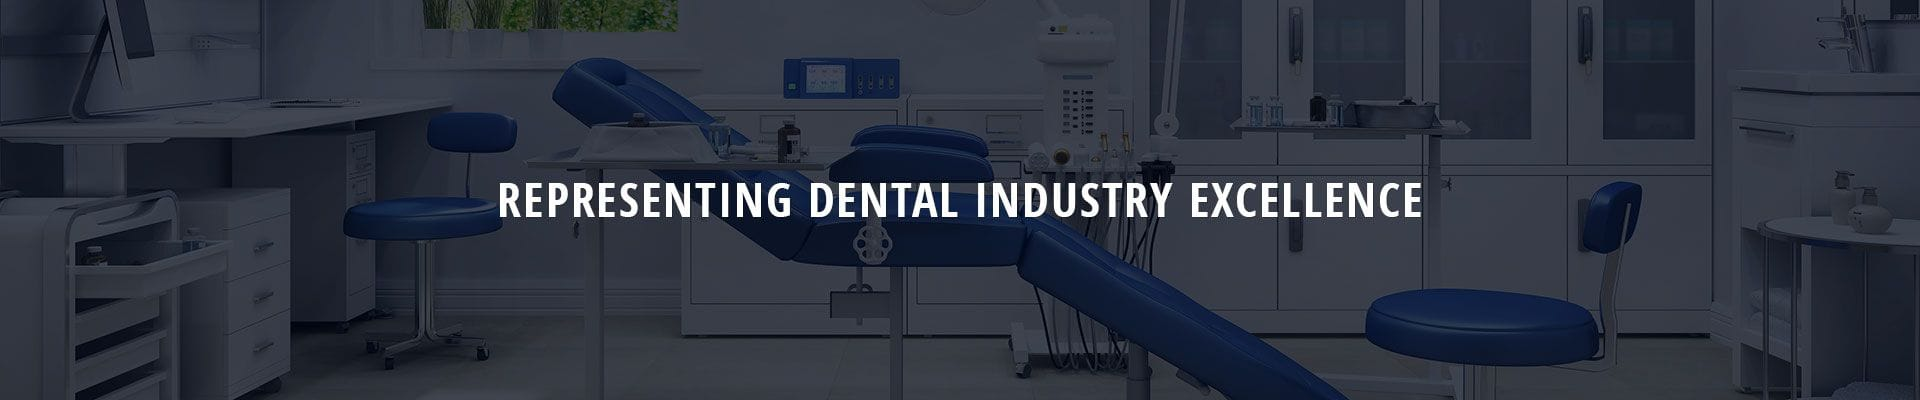 Annual Review | Australian Dental Industry Association